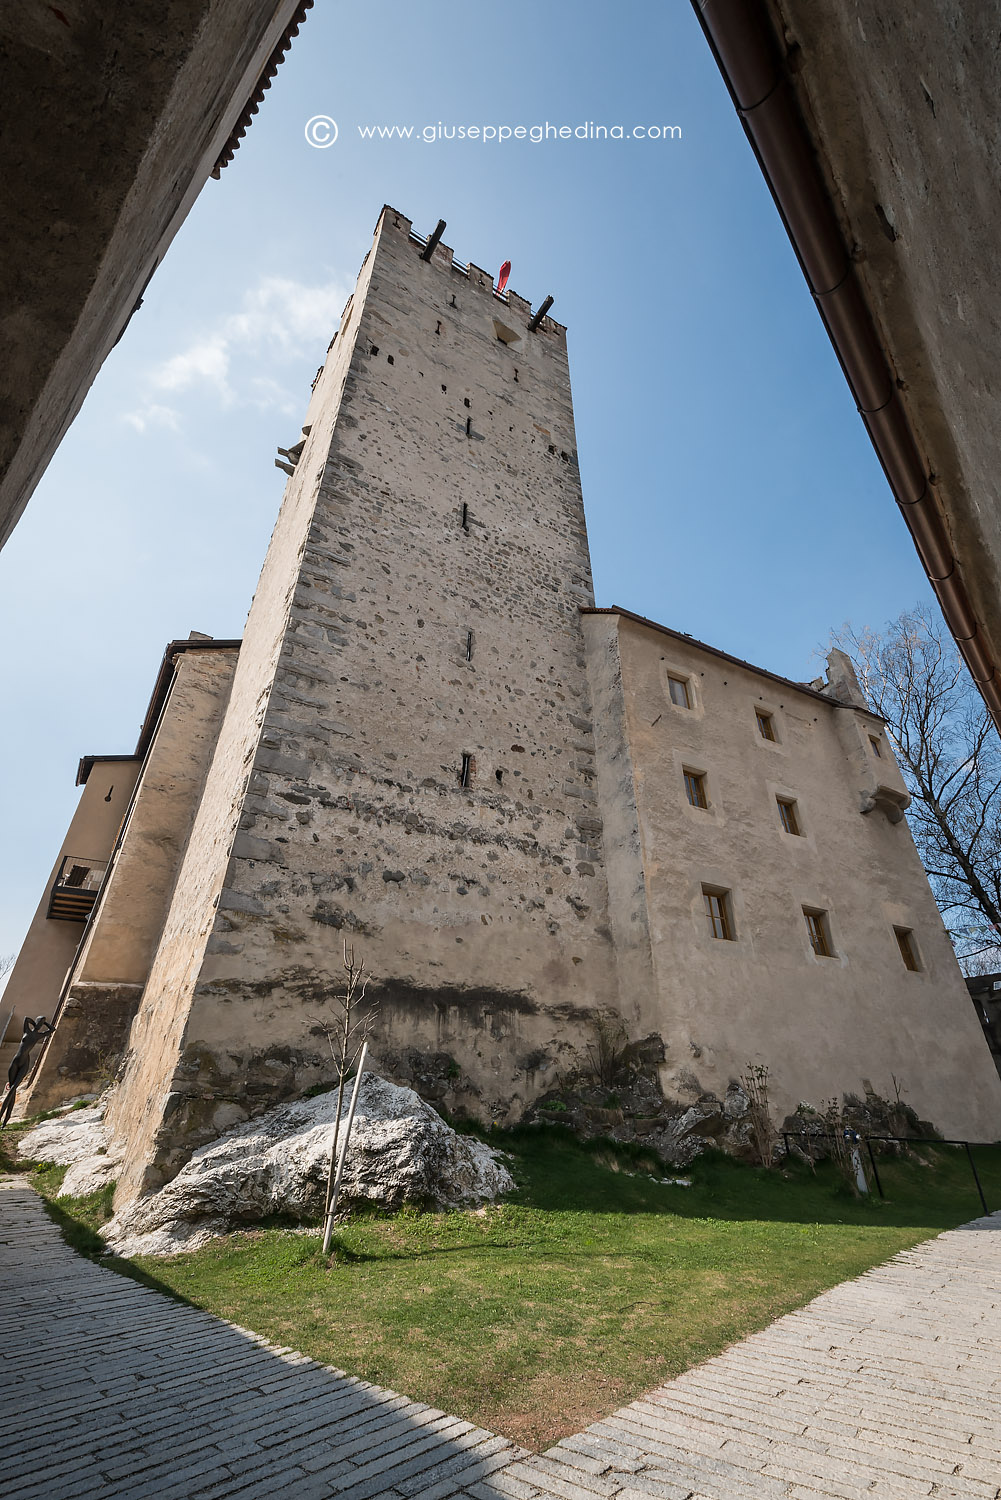 20140402_107_photo_giuseppe_ghedina_messner_mountiam_museum_ripa.jpg